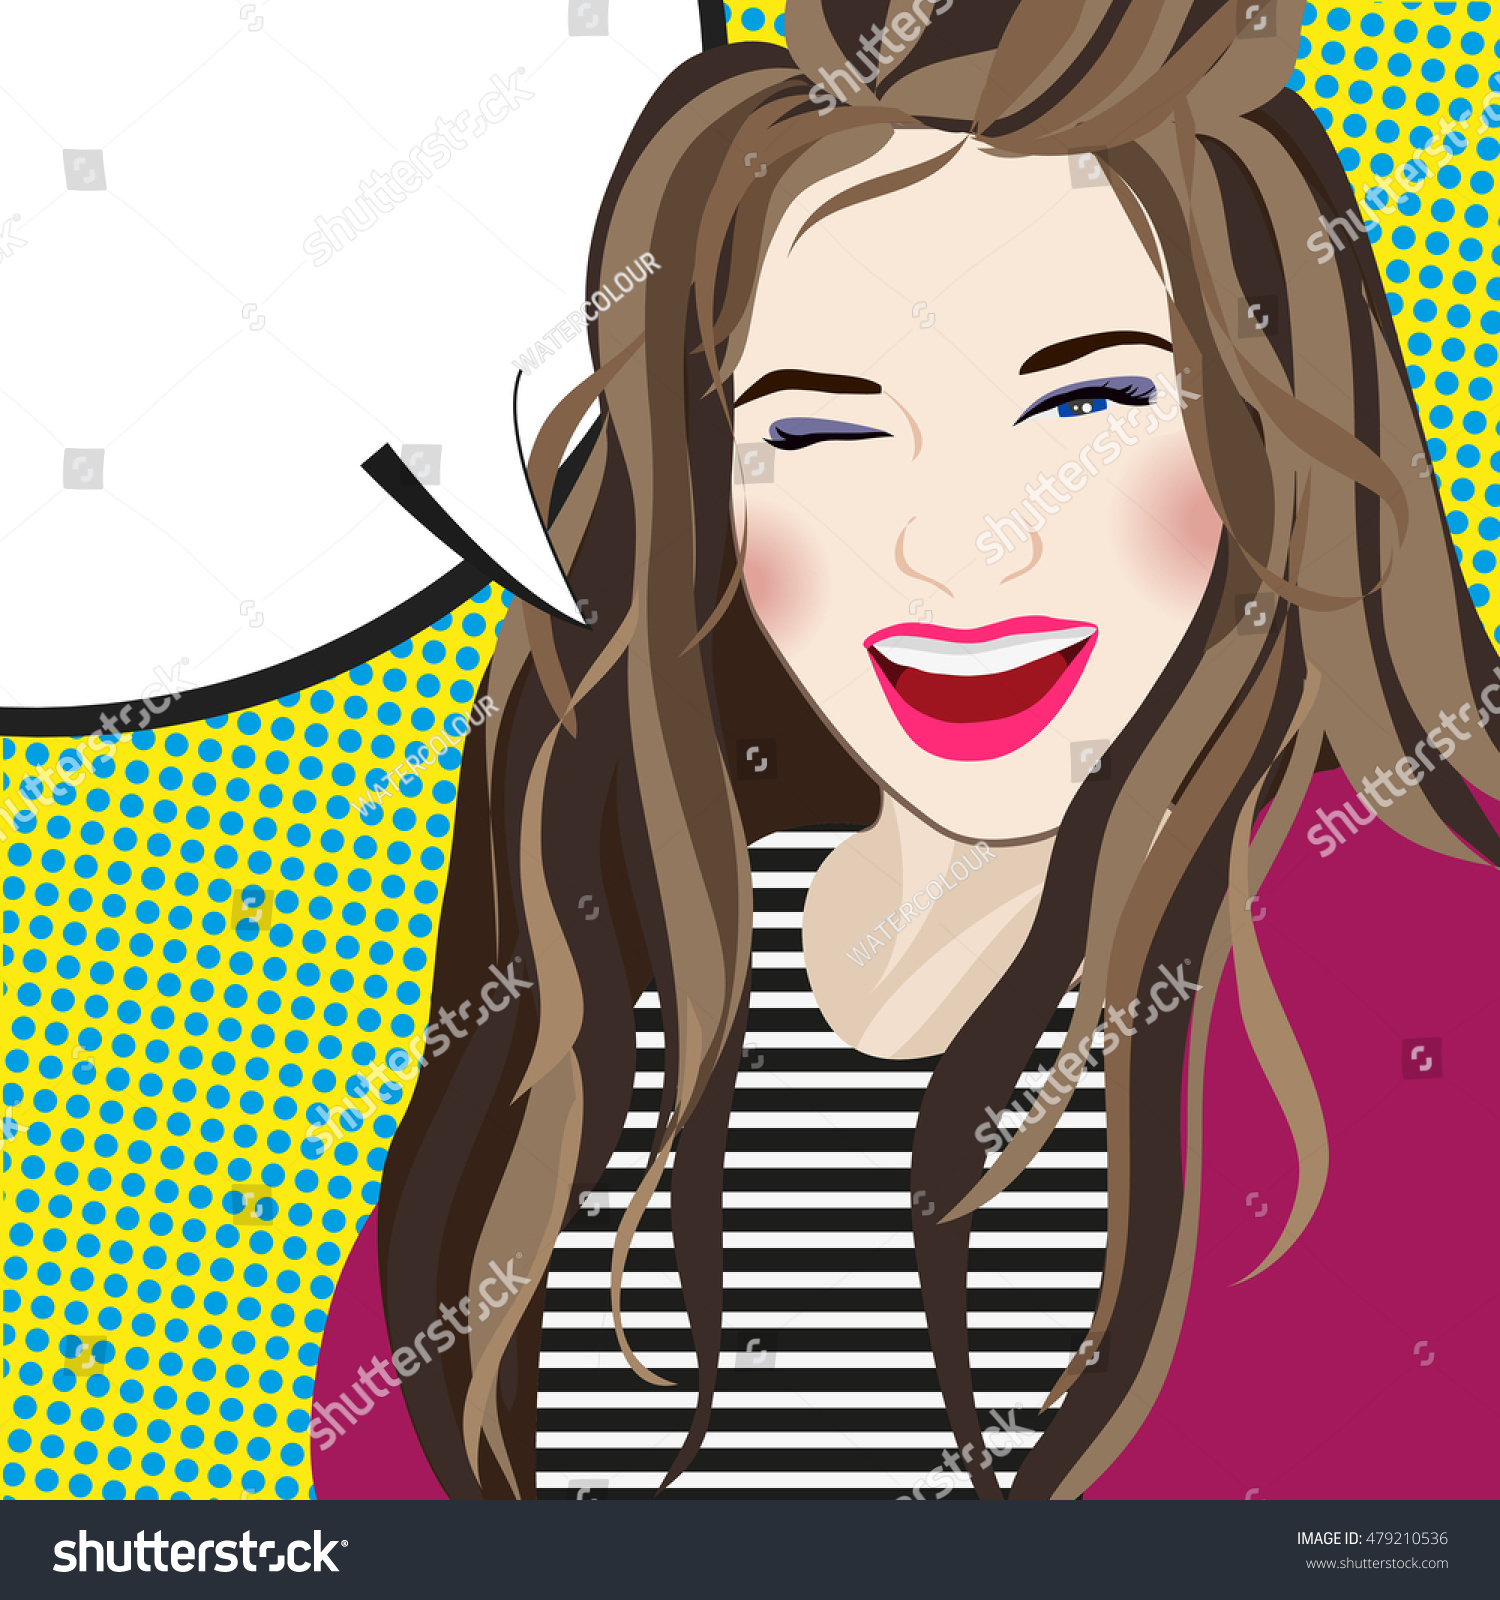 Pop Art Girl Smiling And Happy Funny Woman In Comic Book Style Vector Illustration